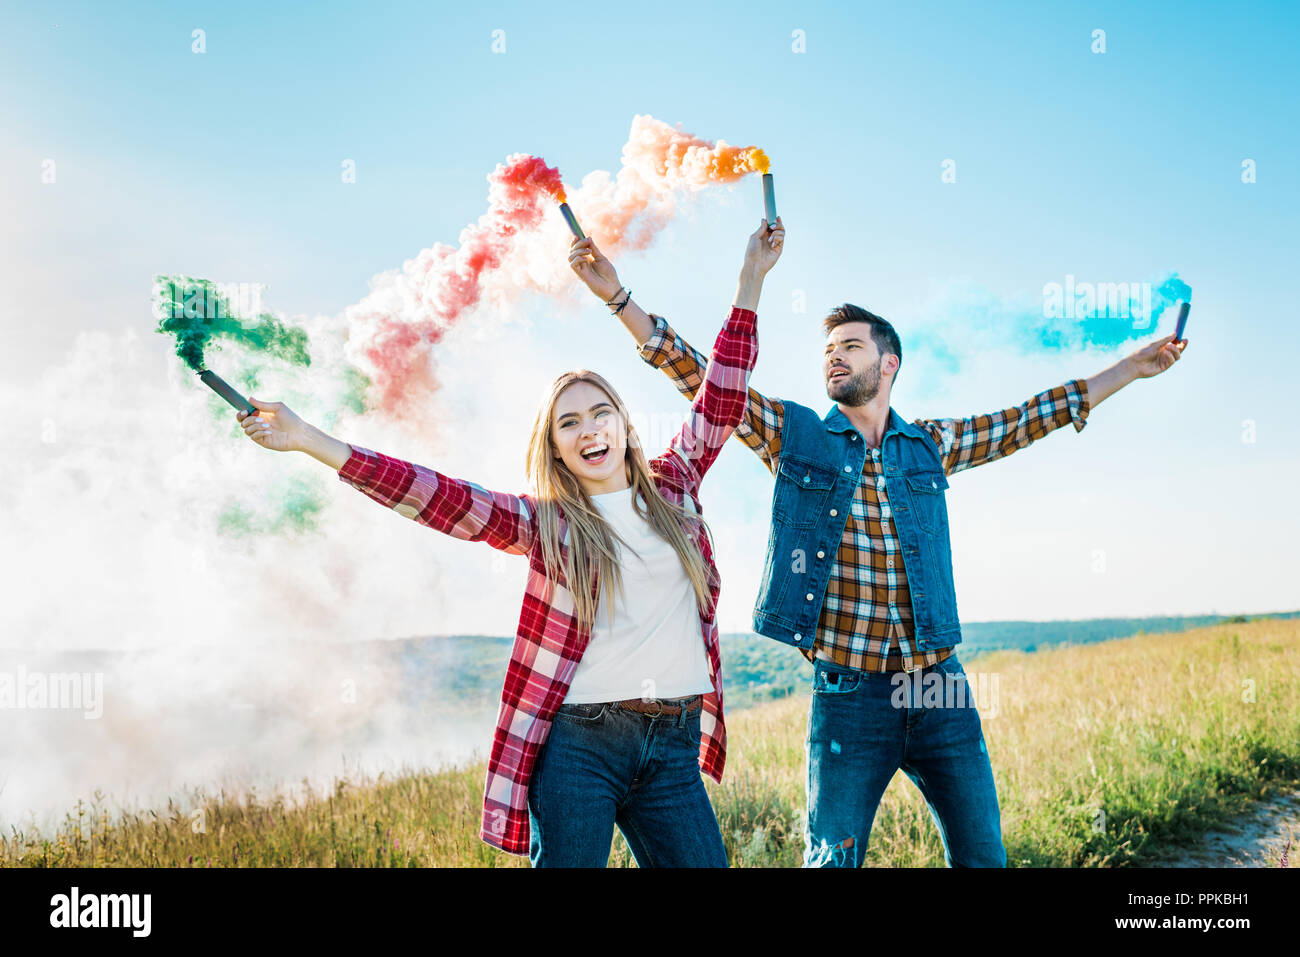 smiling young couple holding colorful smoke bombs on rural meadow - Stock Image